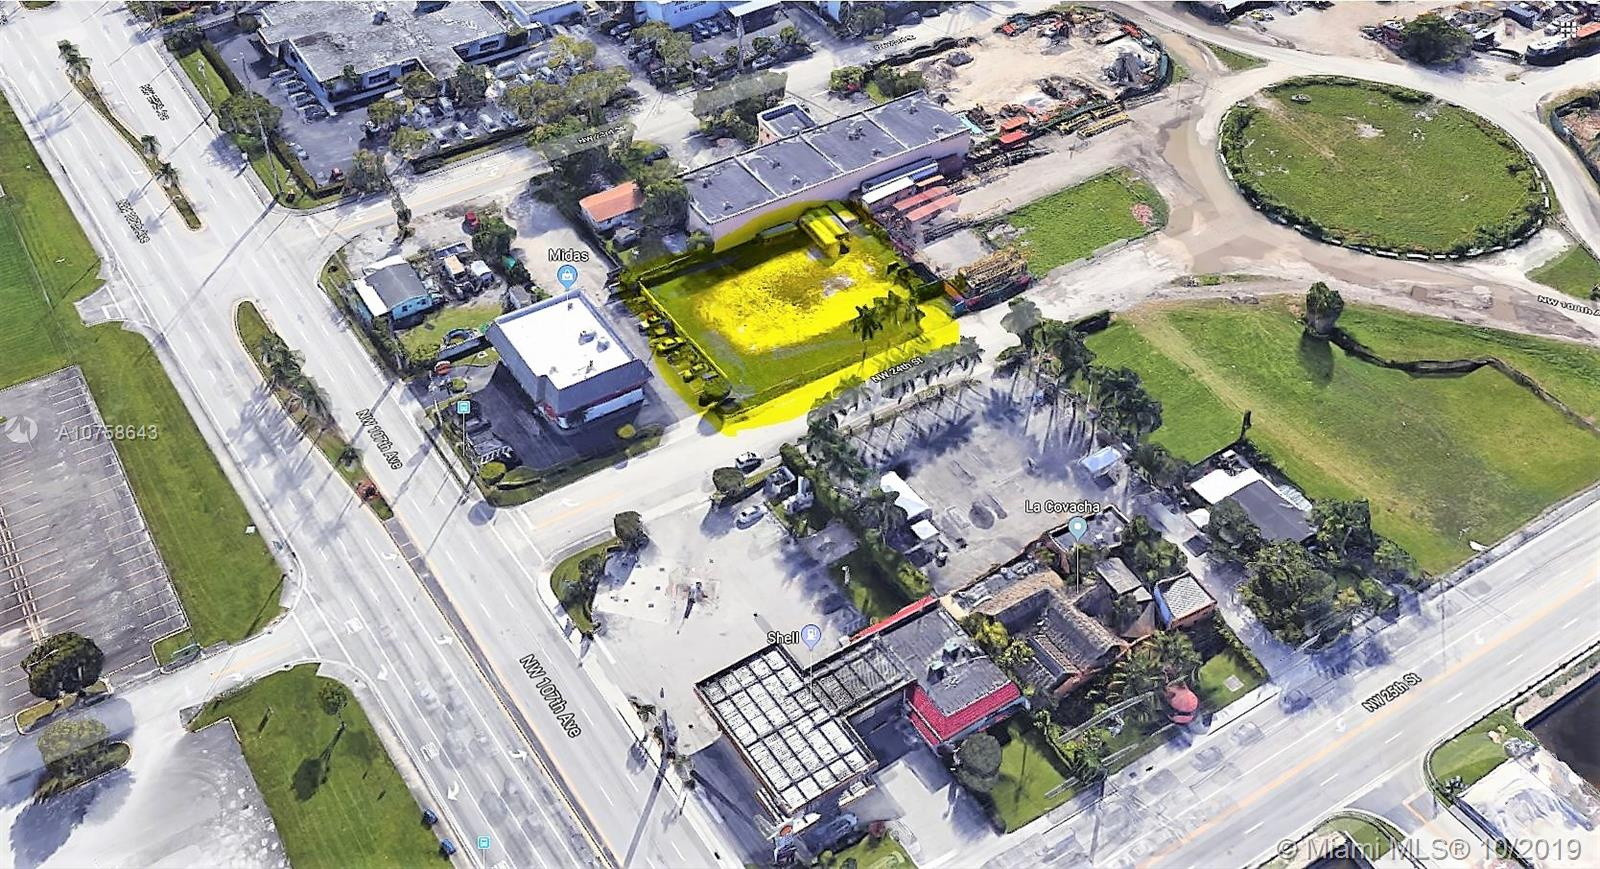 primary photo for 107 NW 24 ST, Sweetwater, FL 33172, US